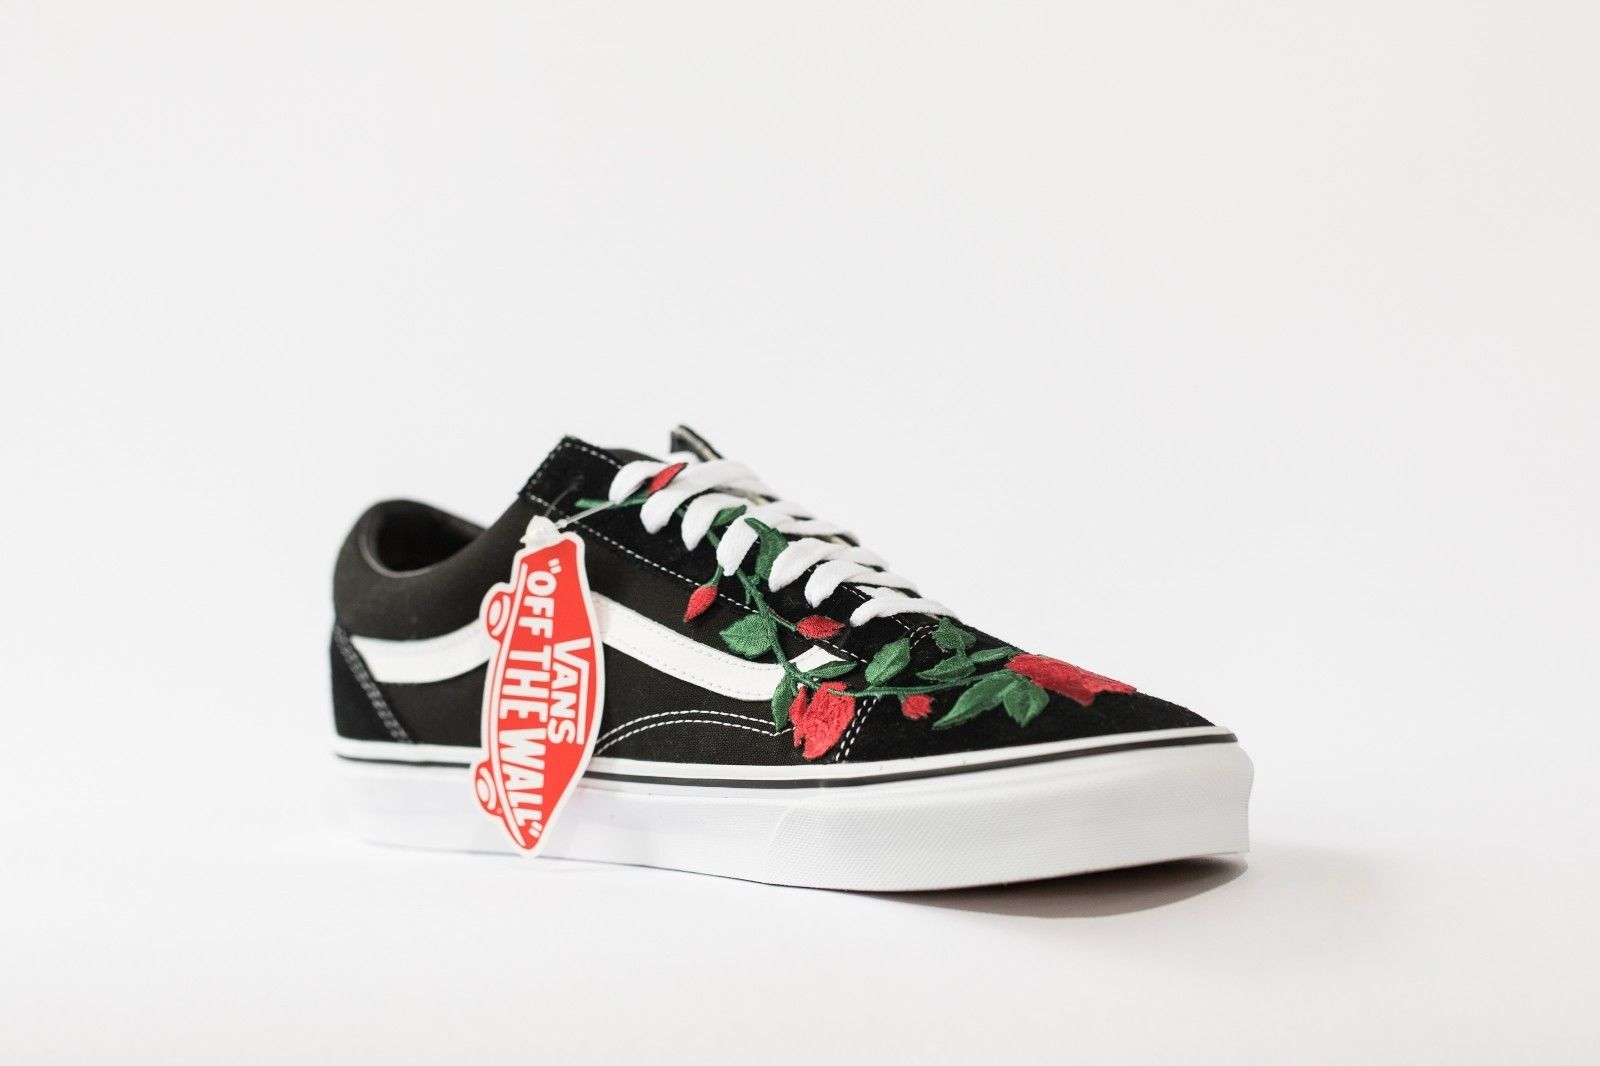 Vans Rose embroidered customs available in all sizes black and white image 3